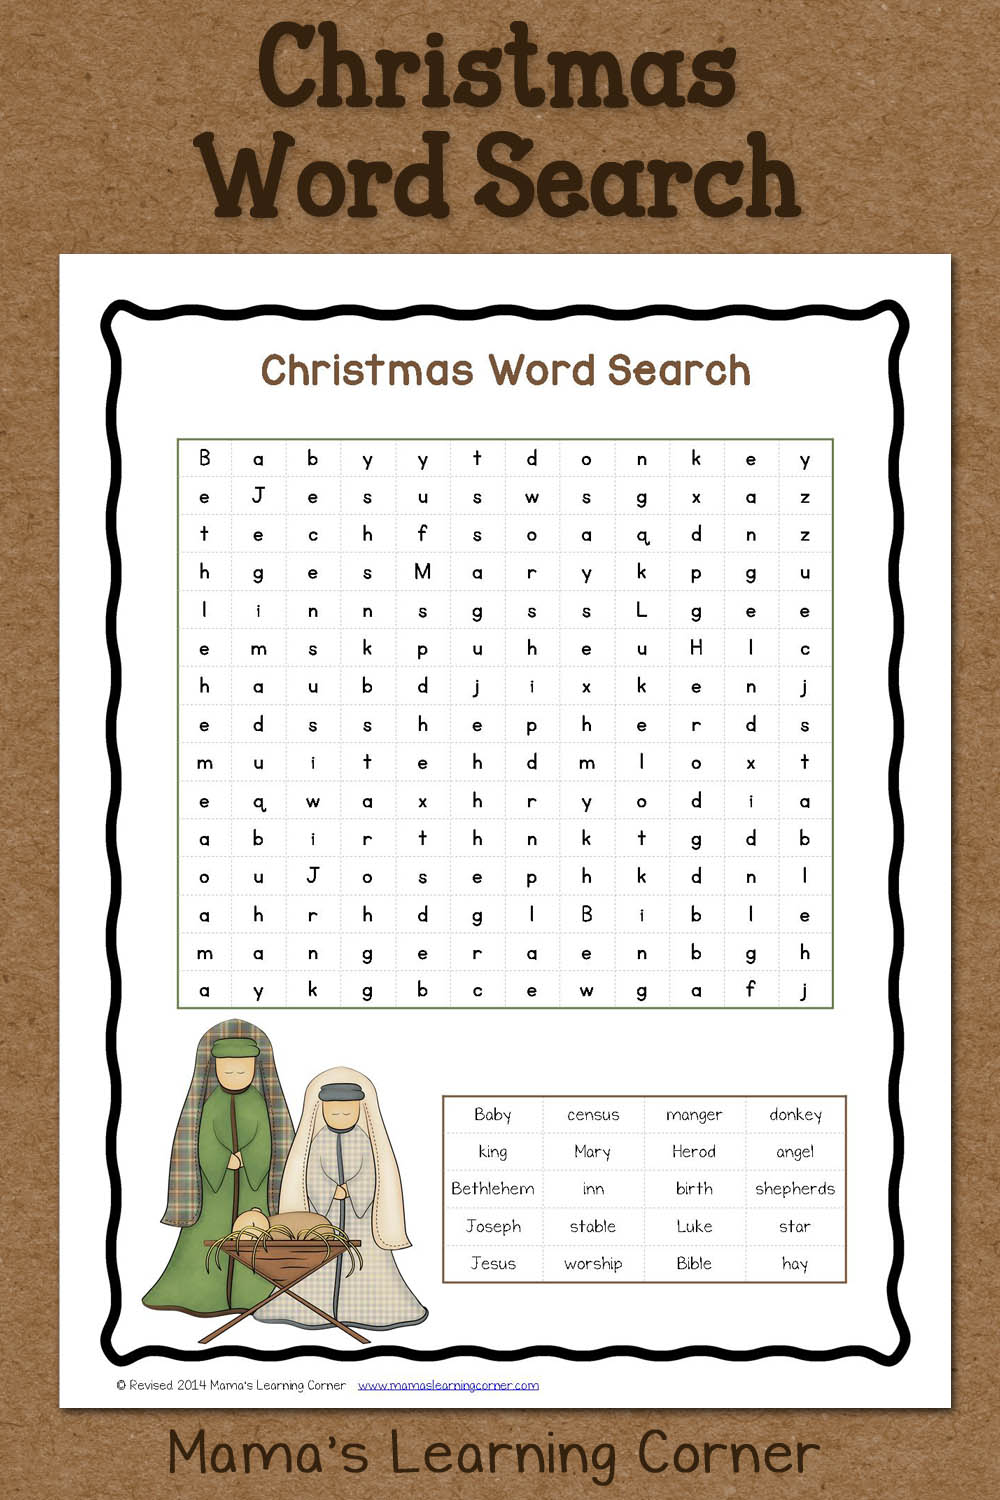 medium resolution of Christmas Word Search: Free Printable - Mamas Learning Corner